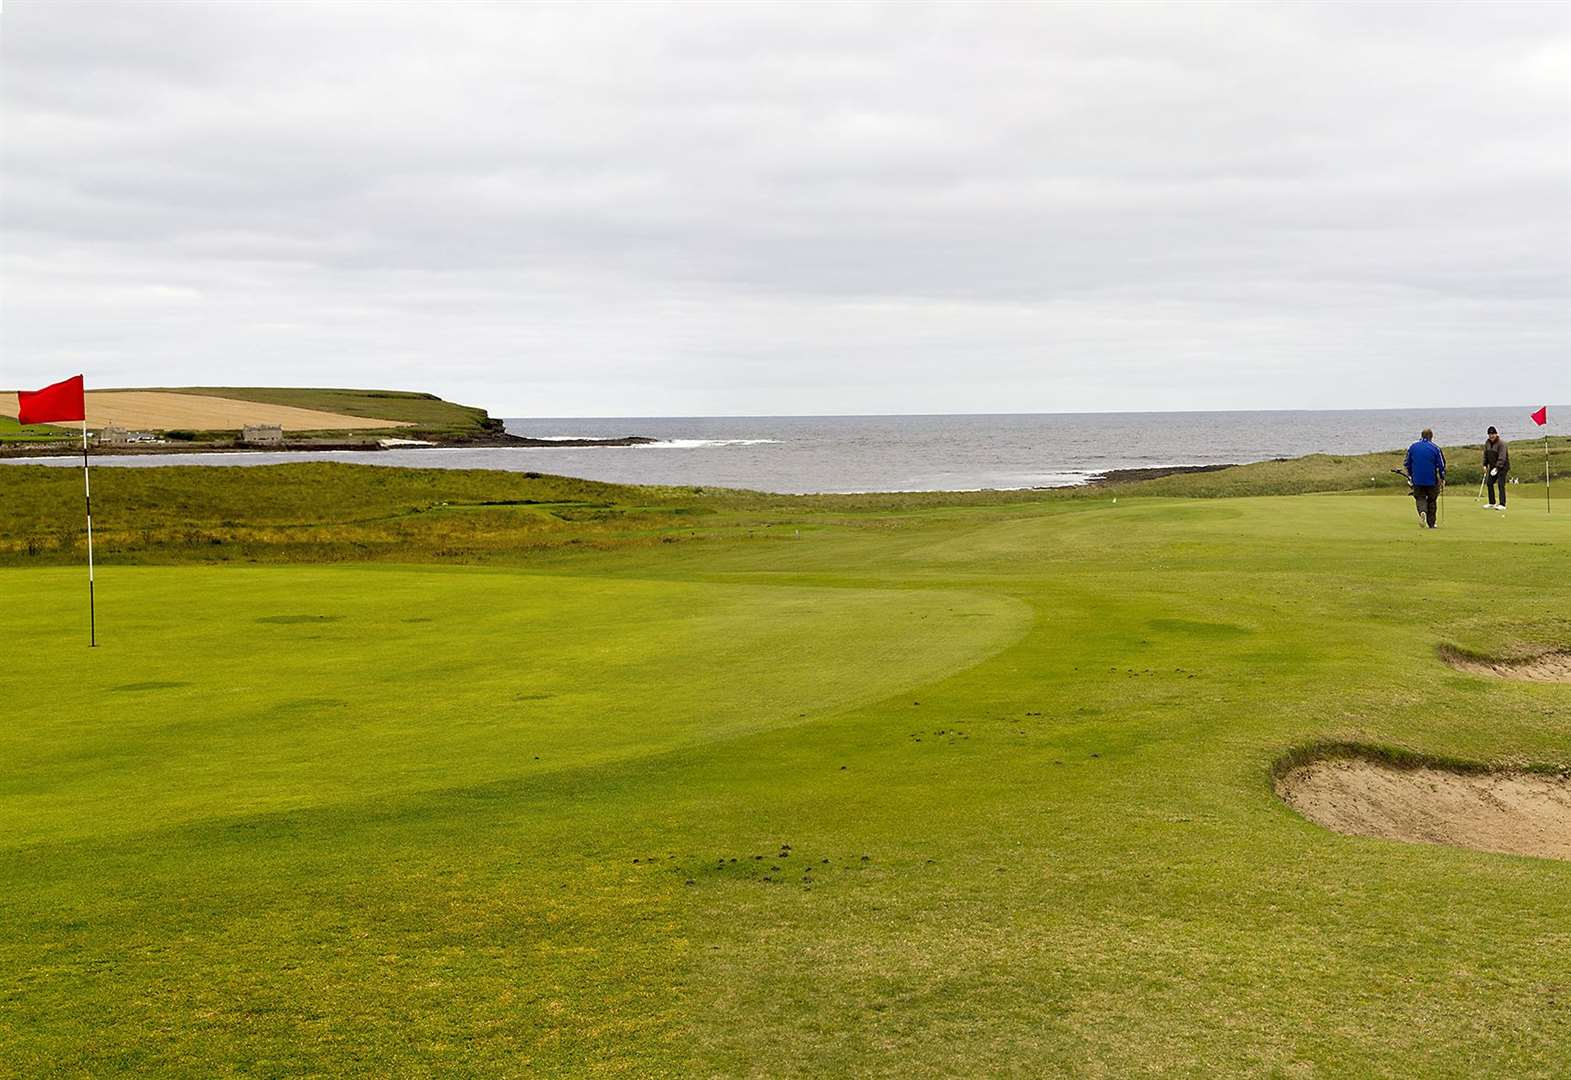 Clubhouse scores from Moray golf courses